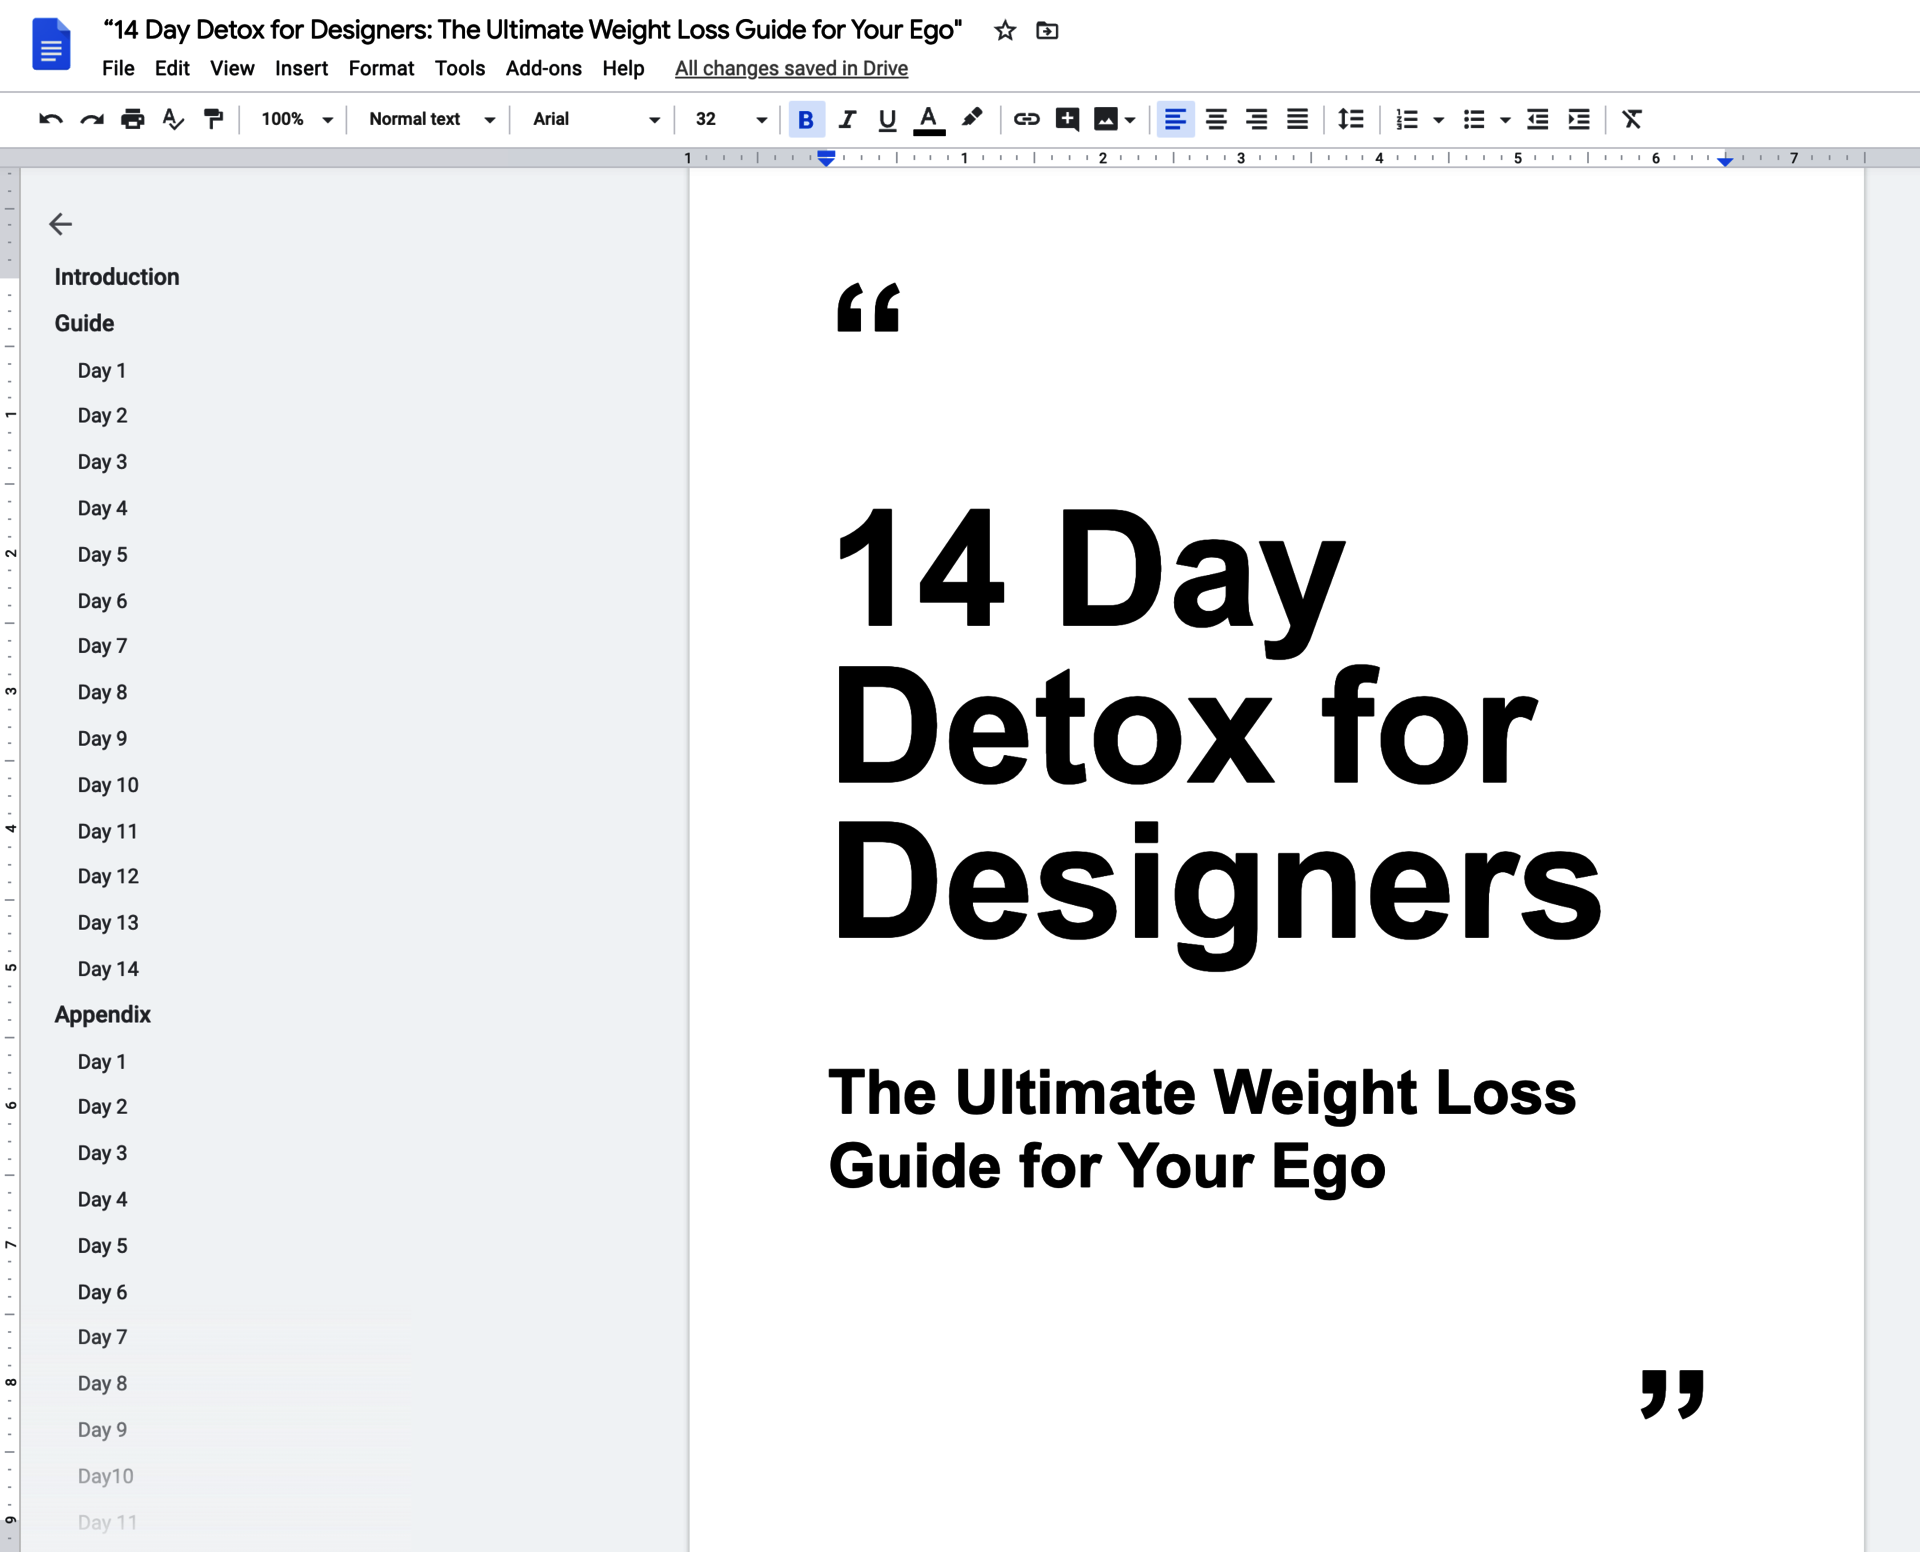 A Google Doc project entitled '14 Day Detox for Designers: The Ultimate Weight Loss Guide for Your Ego'